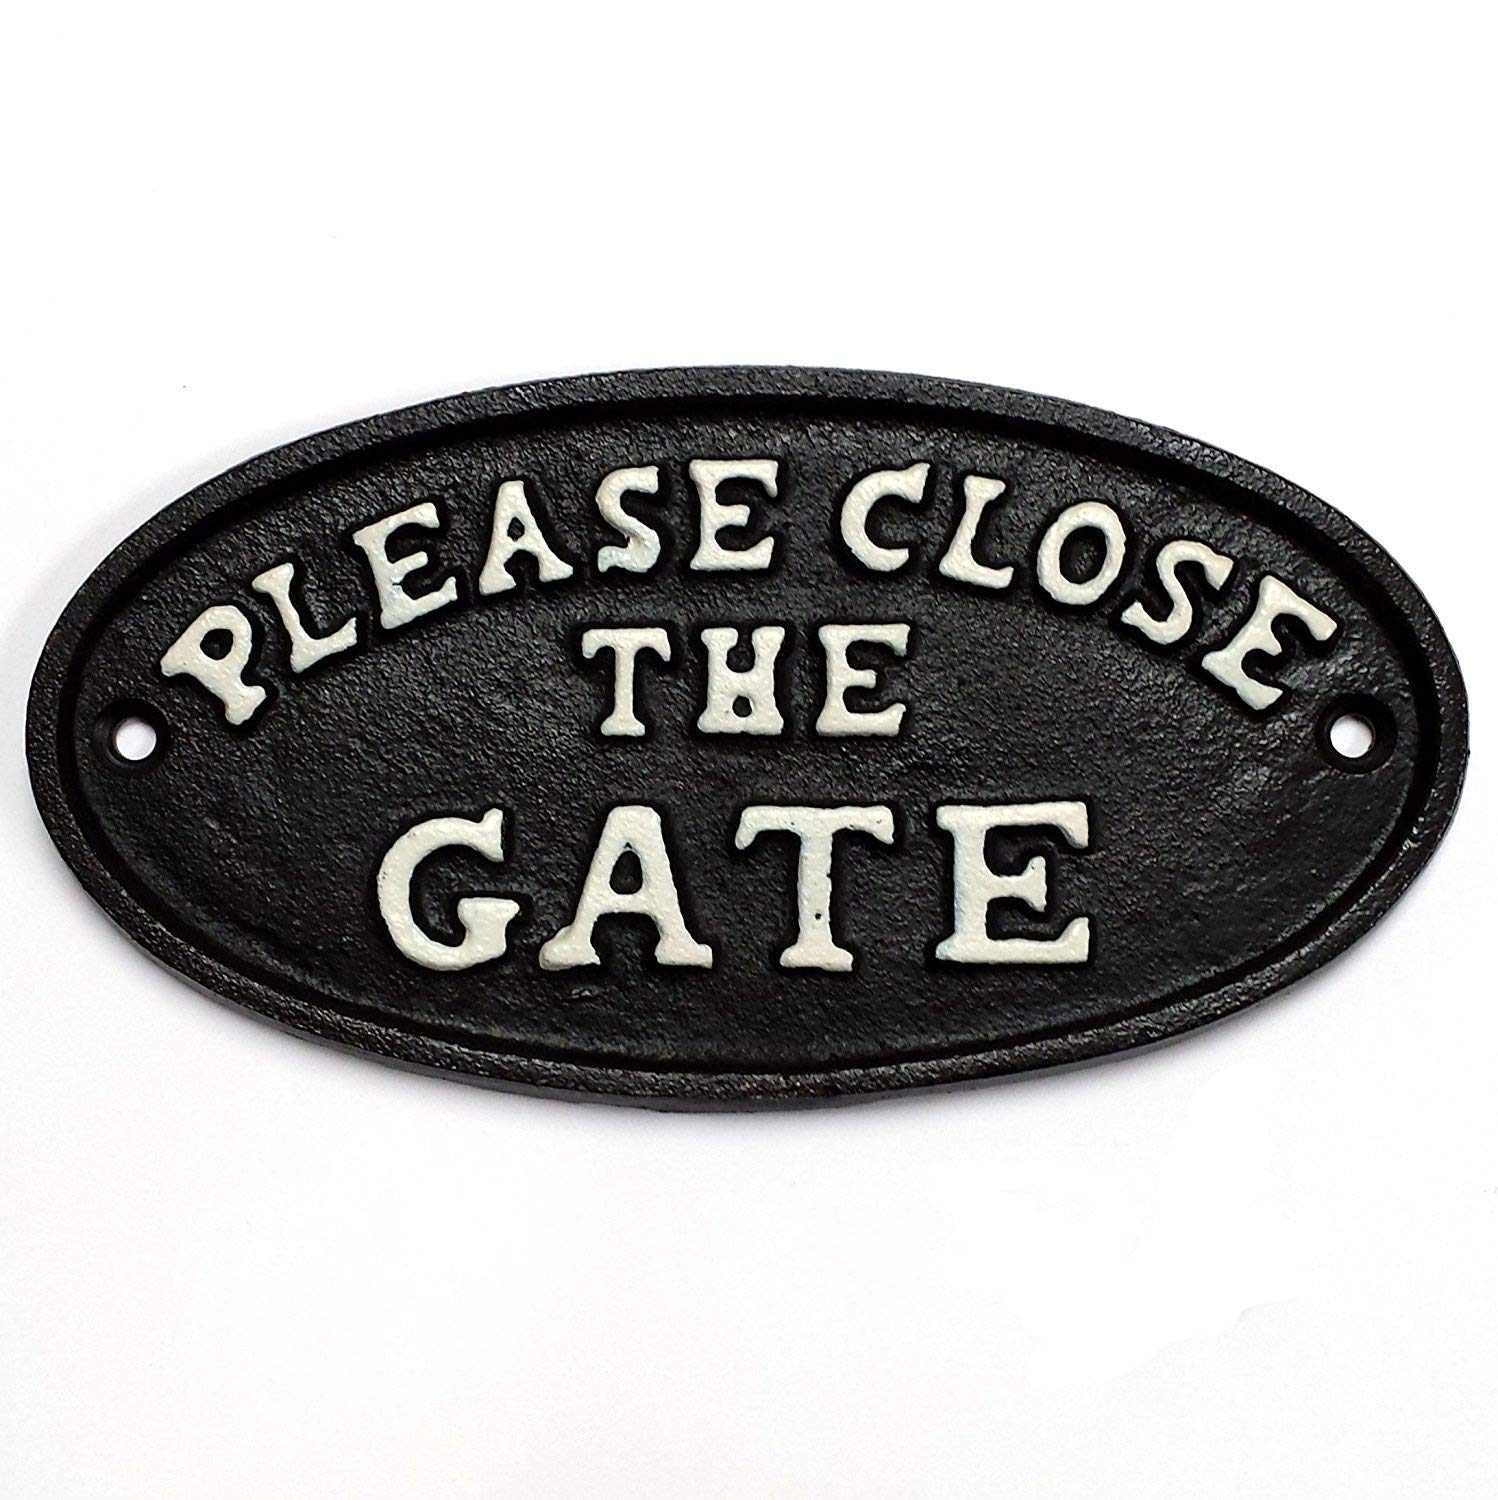 'PLEASE CLOSE THE GATE' small cast iron sign for outdoor use (Black) SN2850